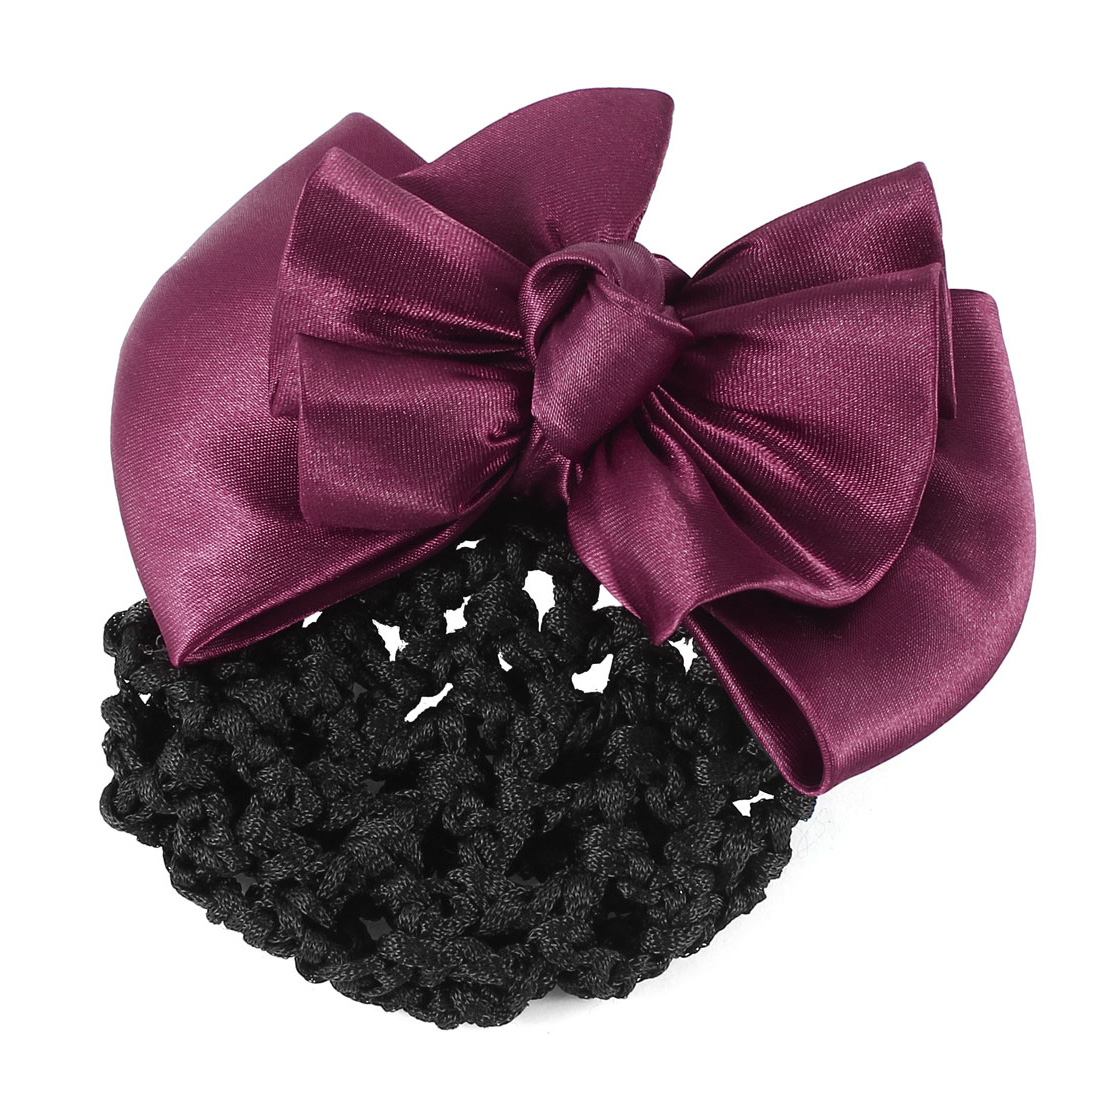 DIY Hairstyle Bowknot Shape Hair Clip Burgundy w Black Snood Net